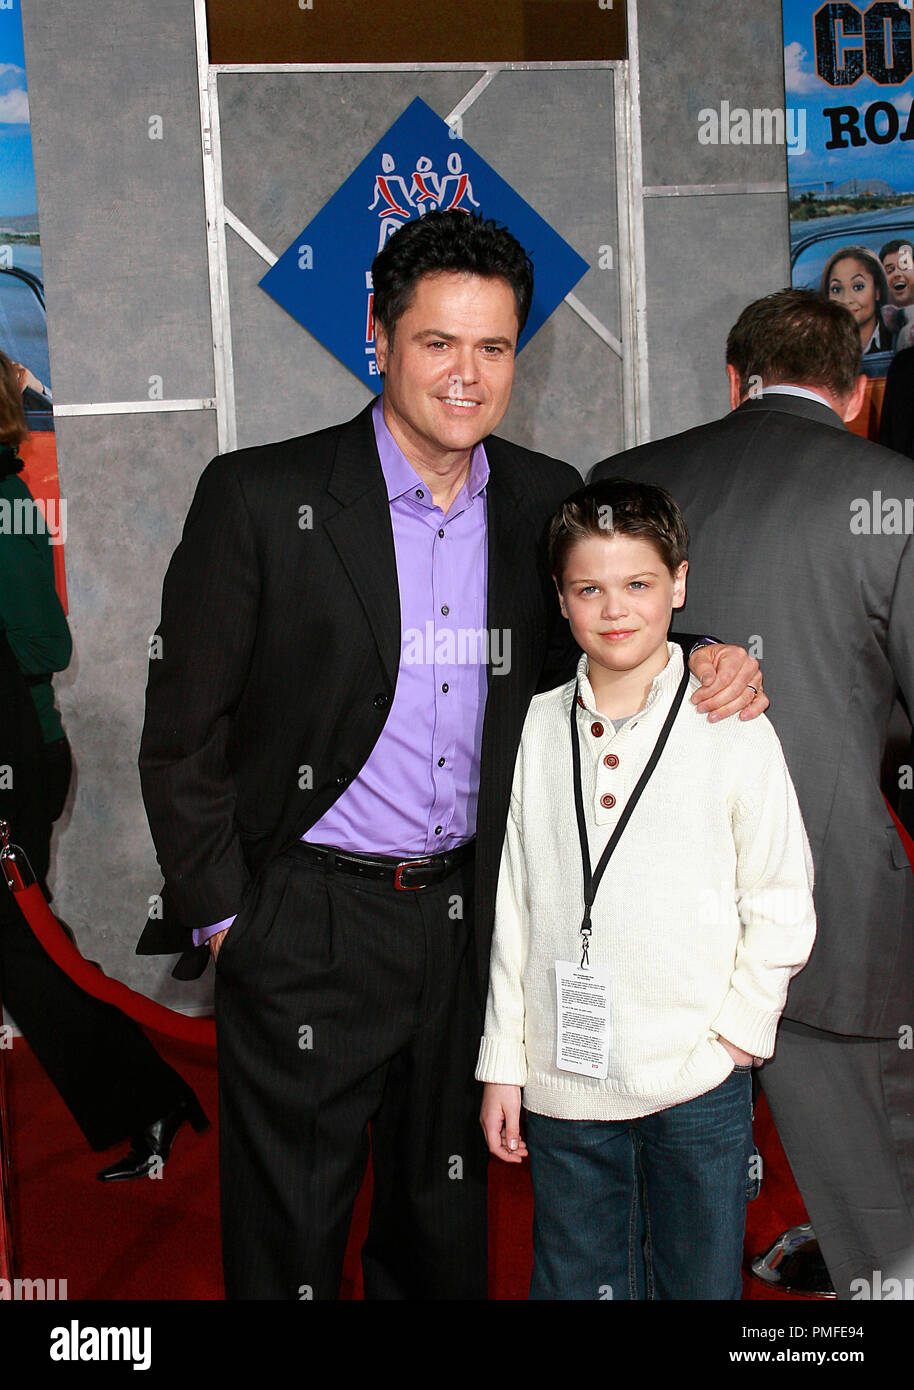 Donny Osmond Son Joshua Premiere High Resolution Stock Photography And Images Alamy